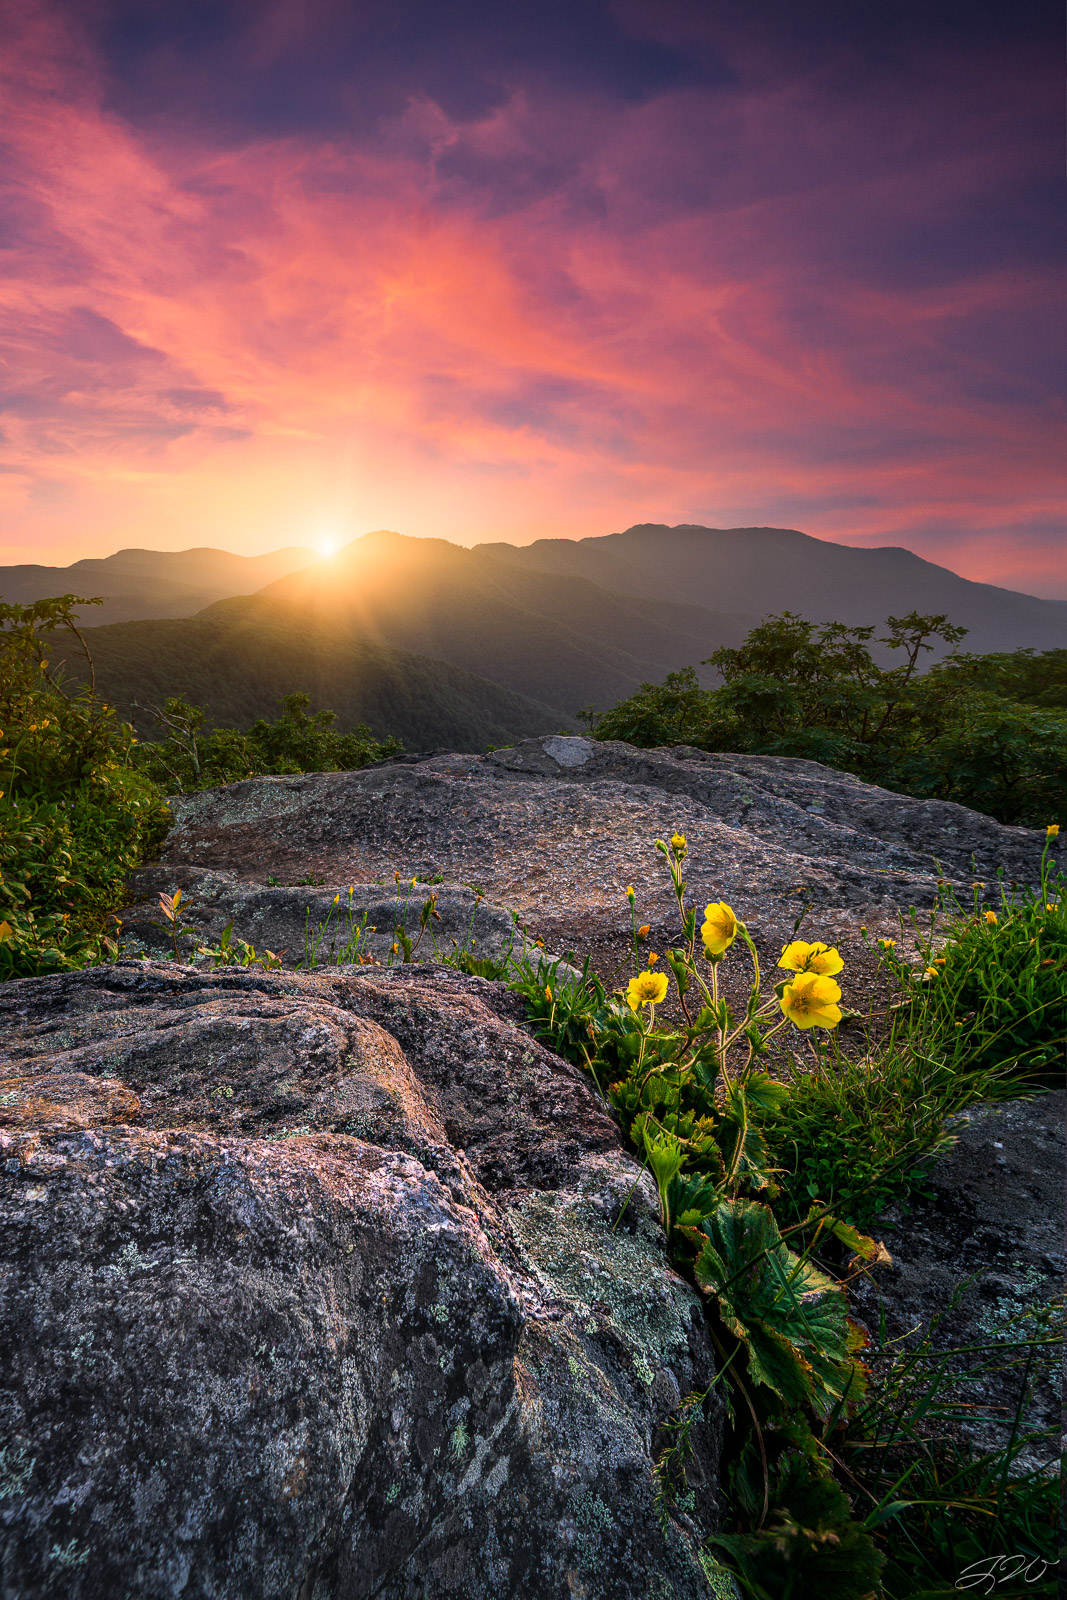 Fine Art Limited Edition of 100. A yellow primrose bathes in the warm light from the setting sun high in the mountains during...